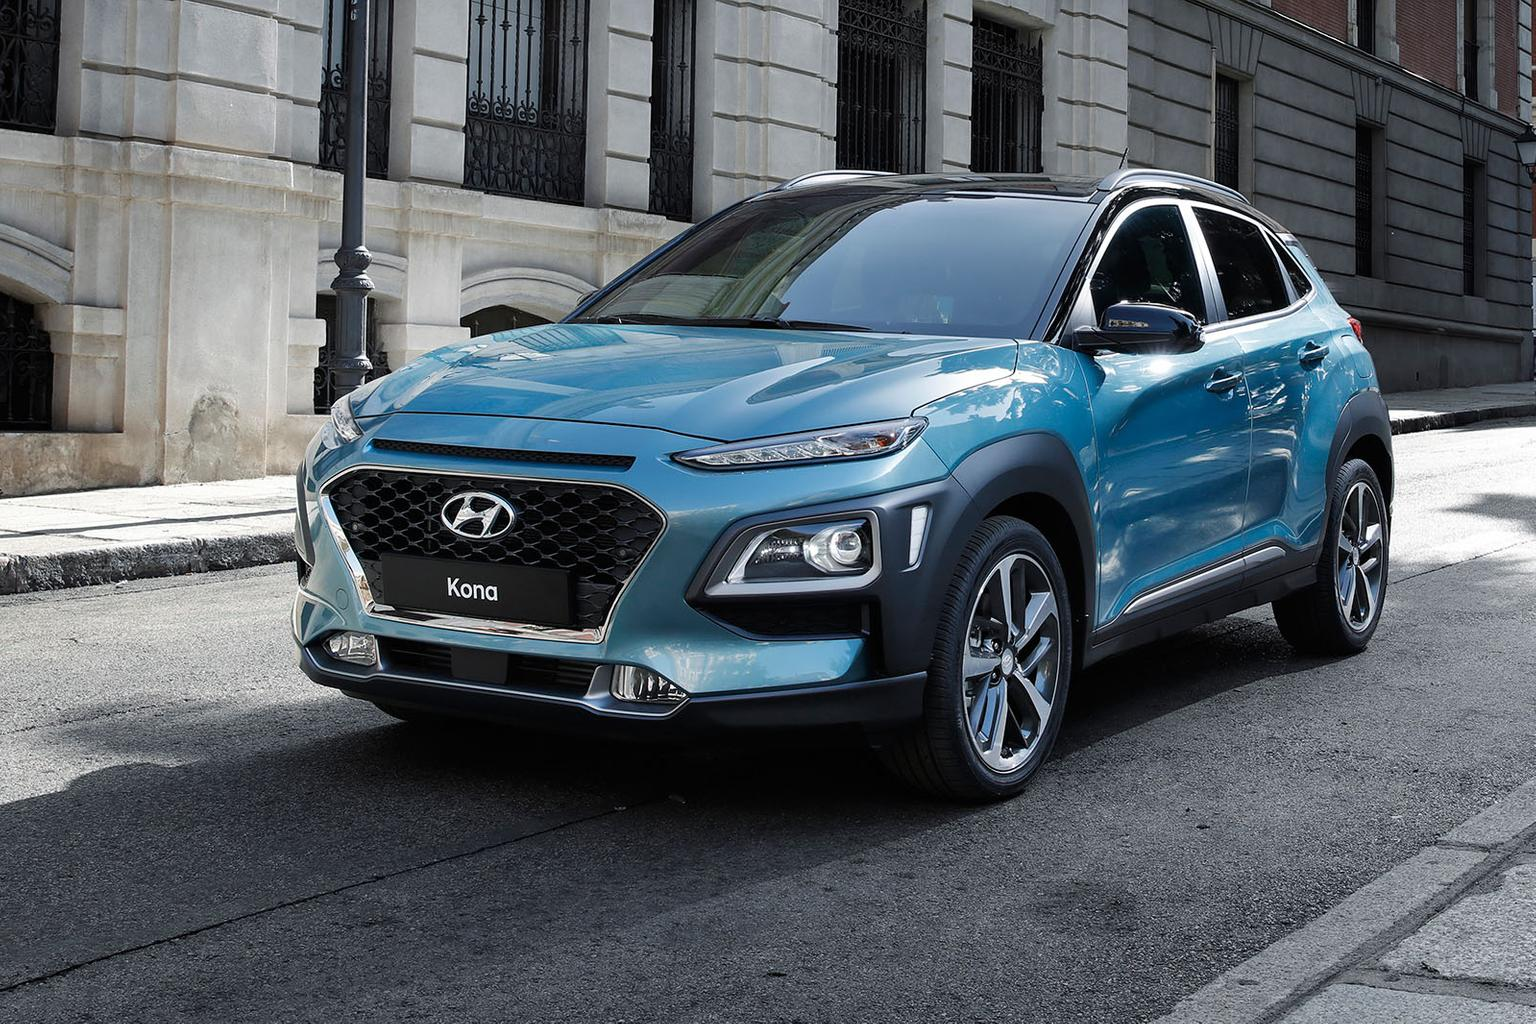 New Hyundai Kona in pictures